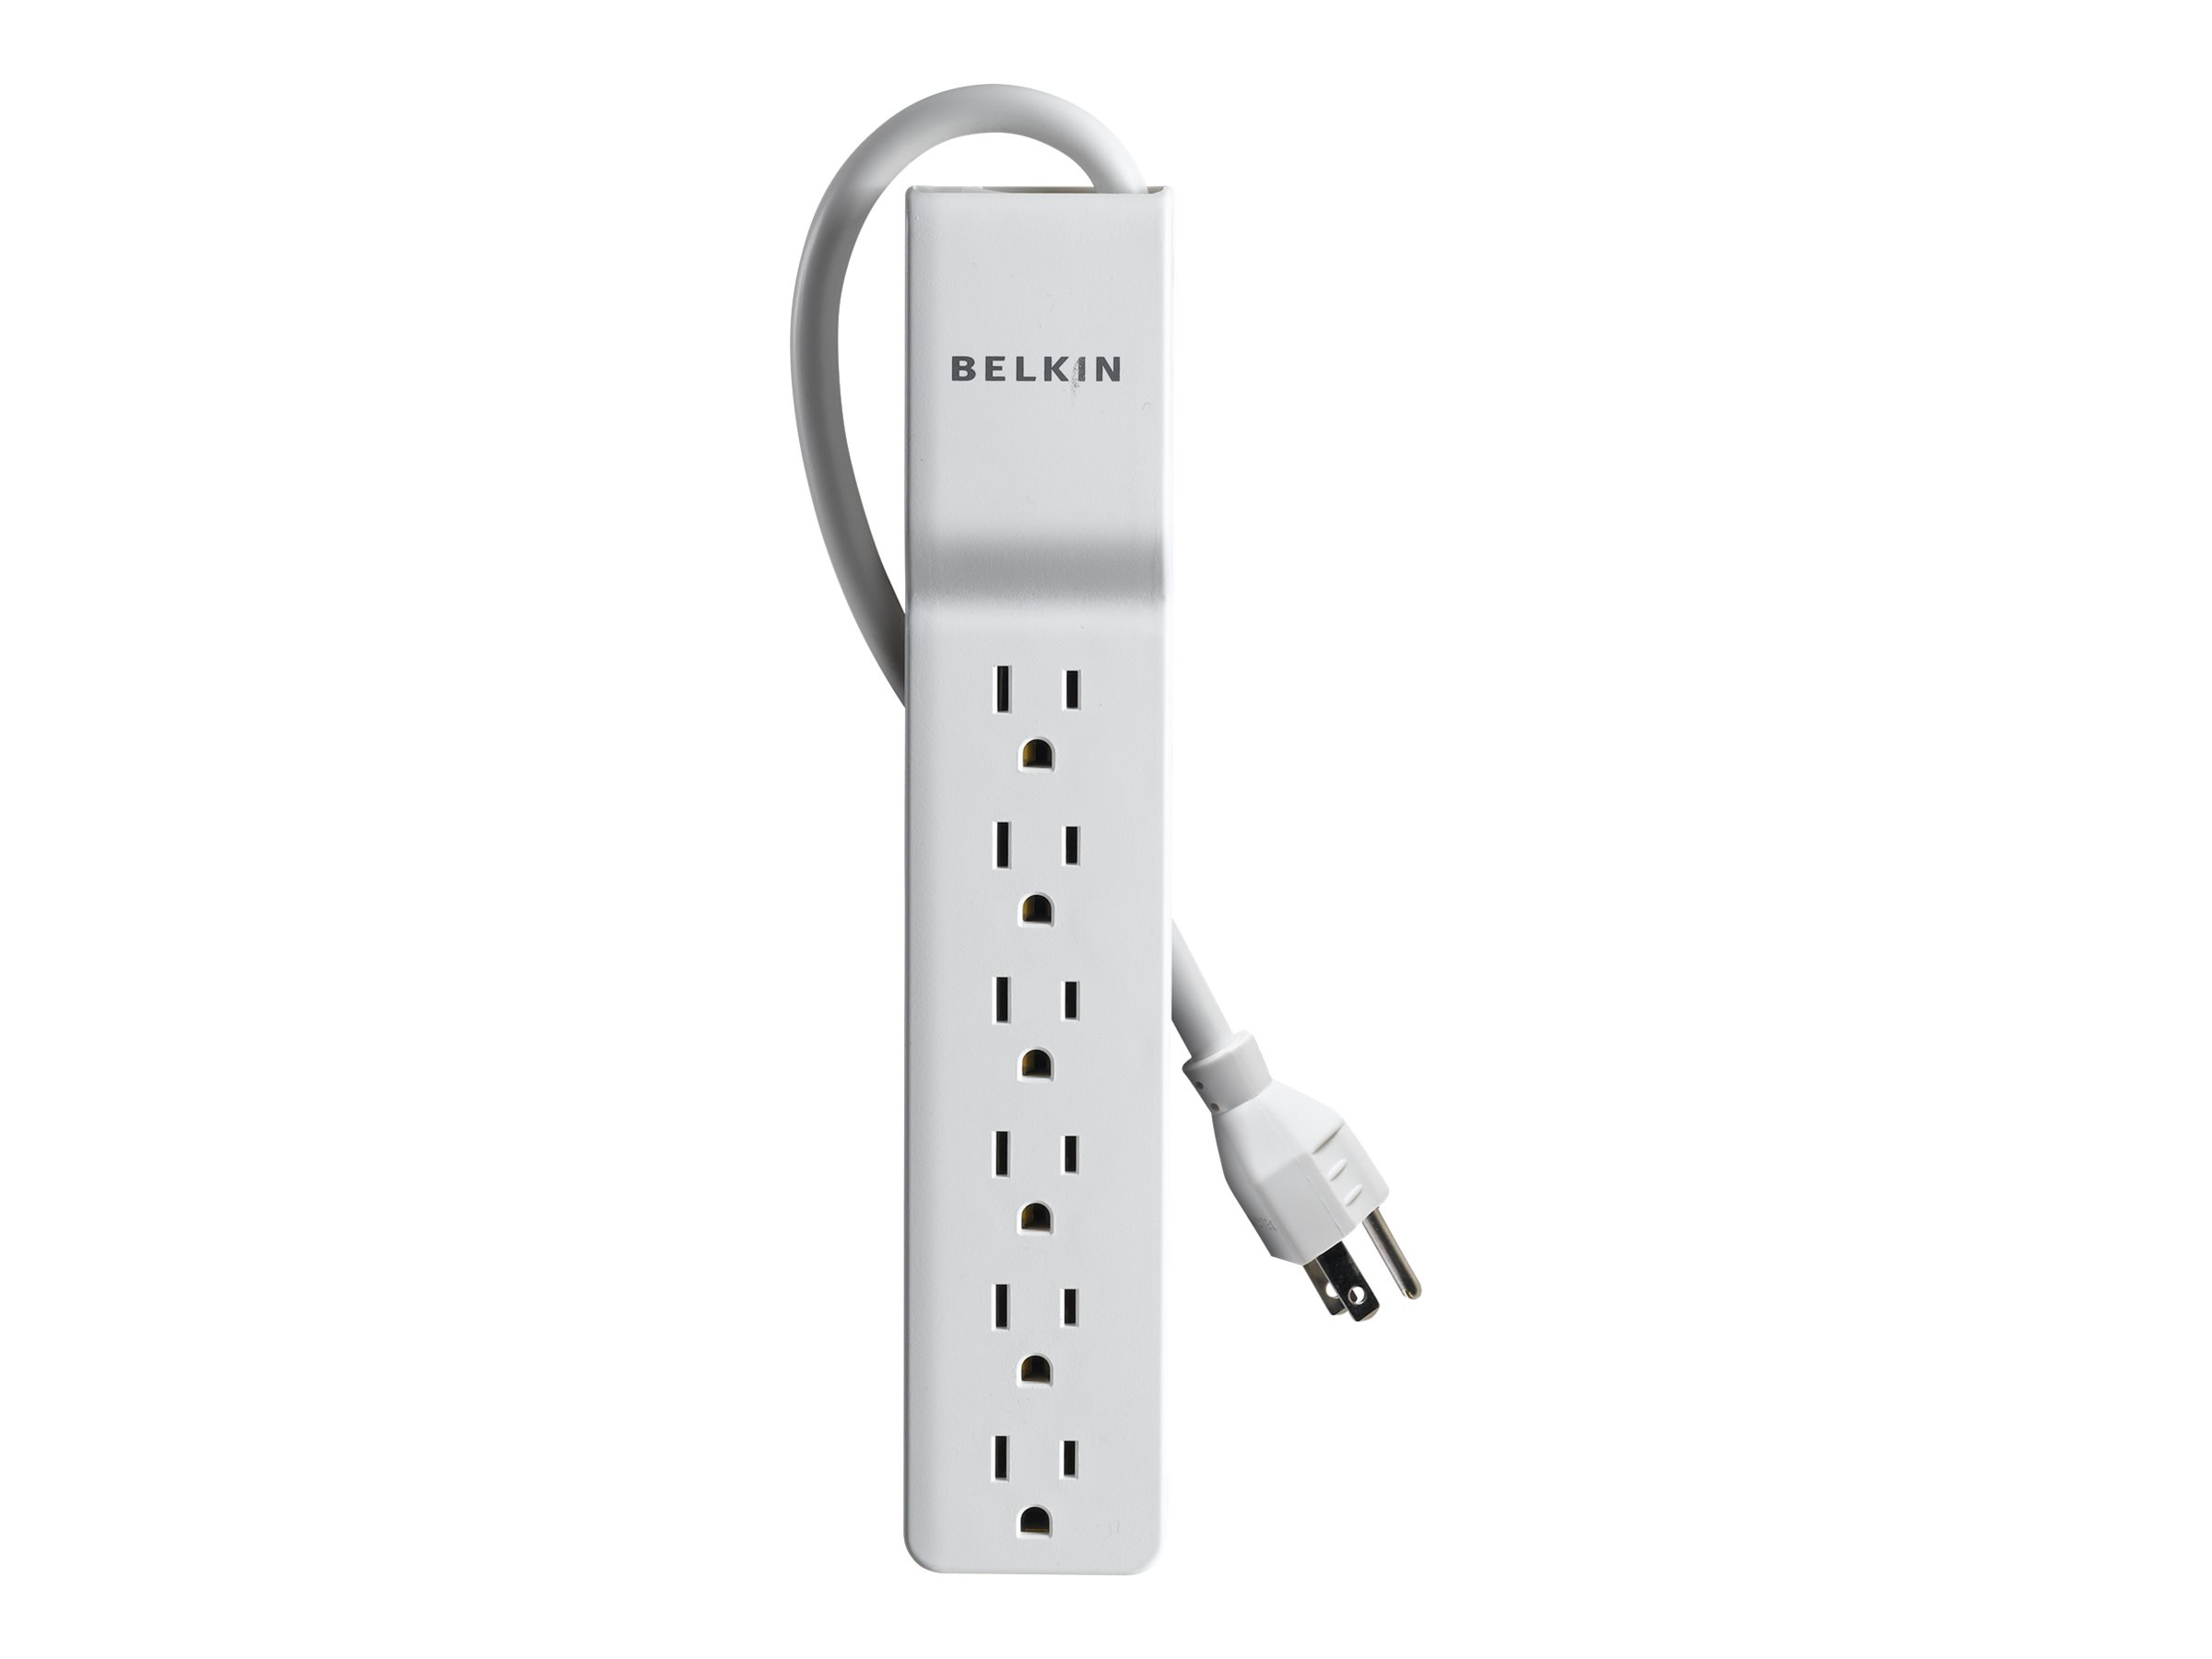 Belkin 6-Outlet Home or Office Surge Protector with 4 ft. Cord